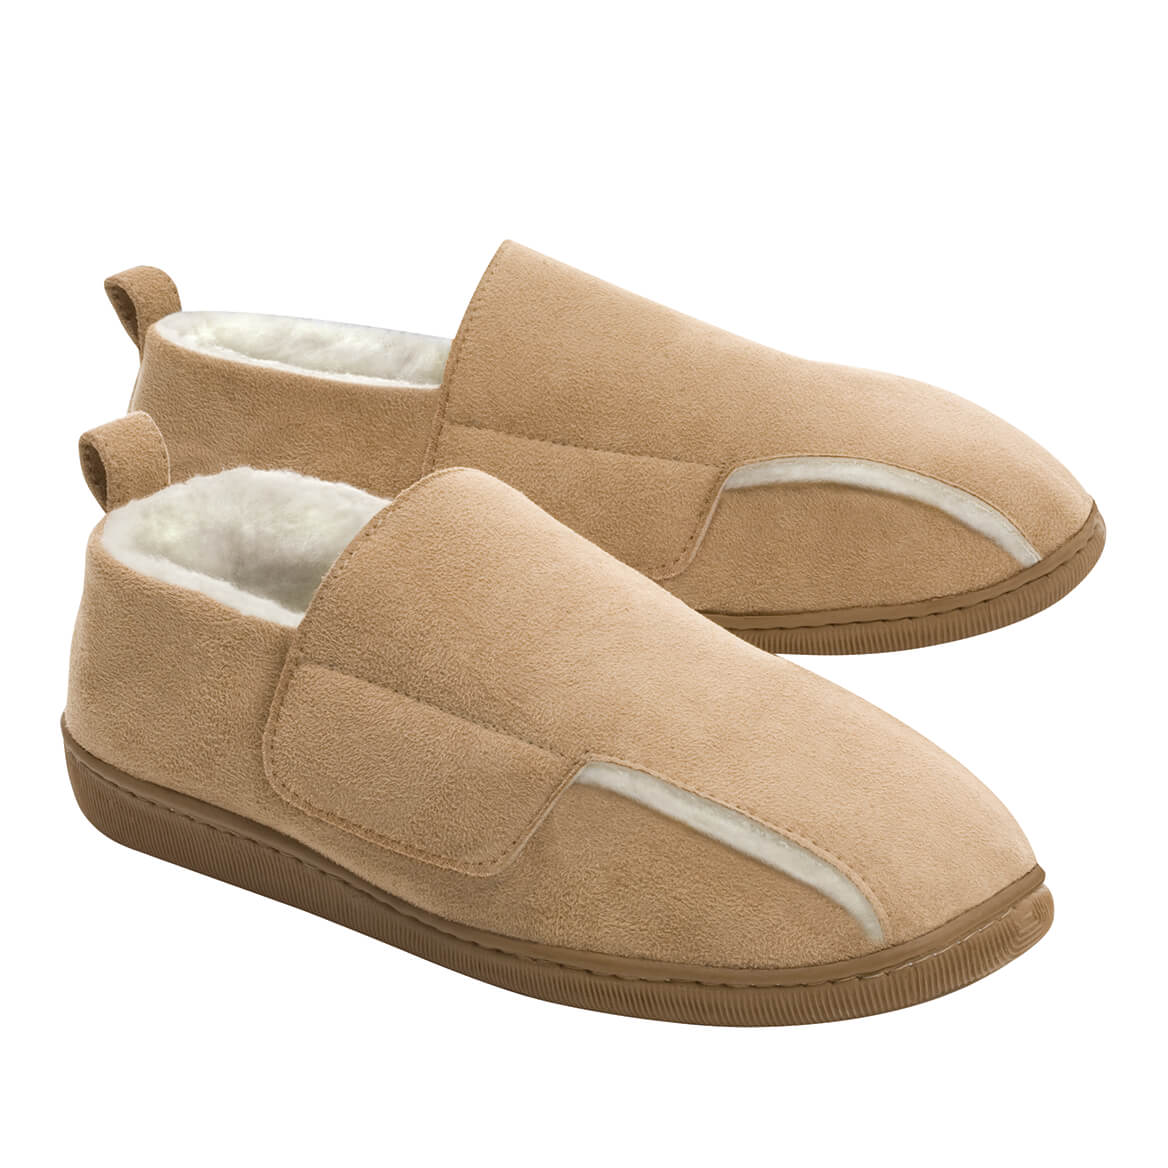 Adjustable Swollen Feet Loafers Ladies-369907